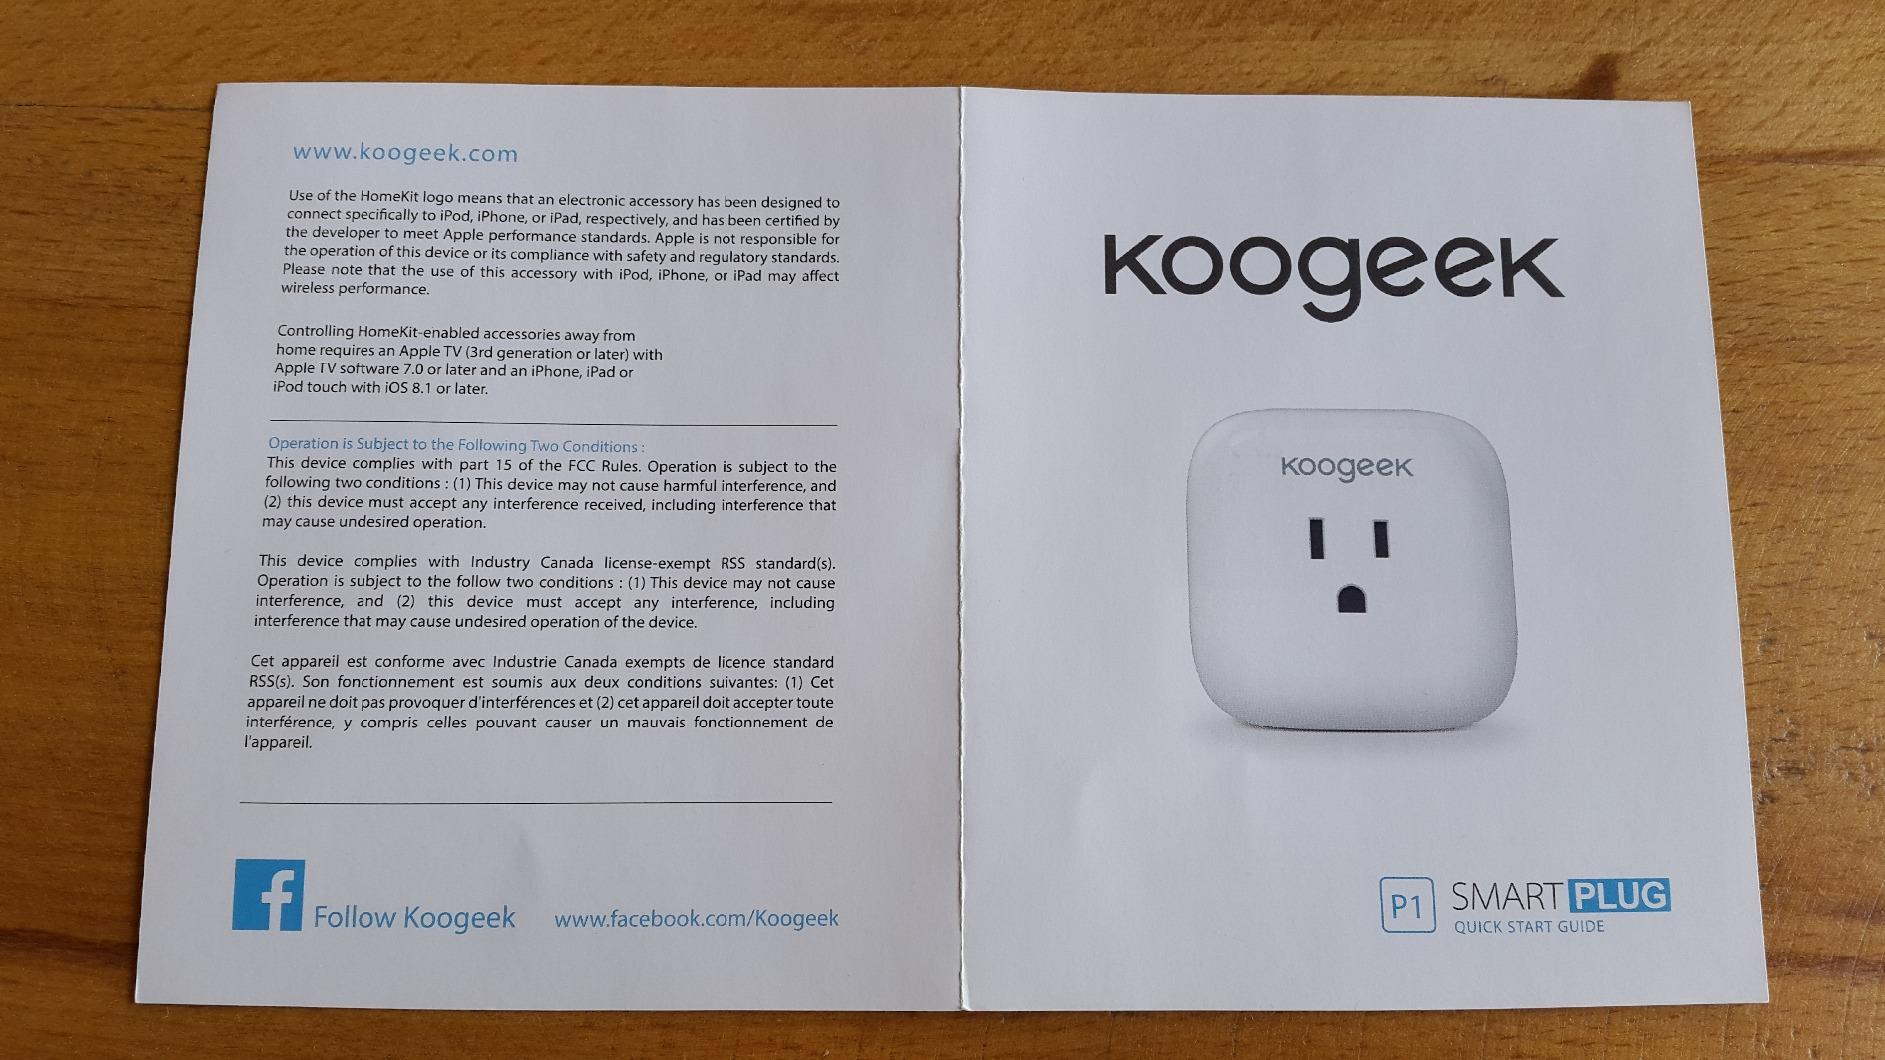 Koogeek Wi Fi Enabled Improved Smart Plug Works With Apple Homekit To Legally In Canada Add 240v Power Outlet From Stove Is This Helpful 1 0